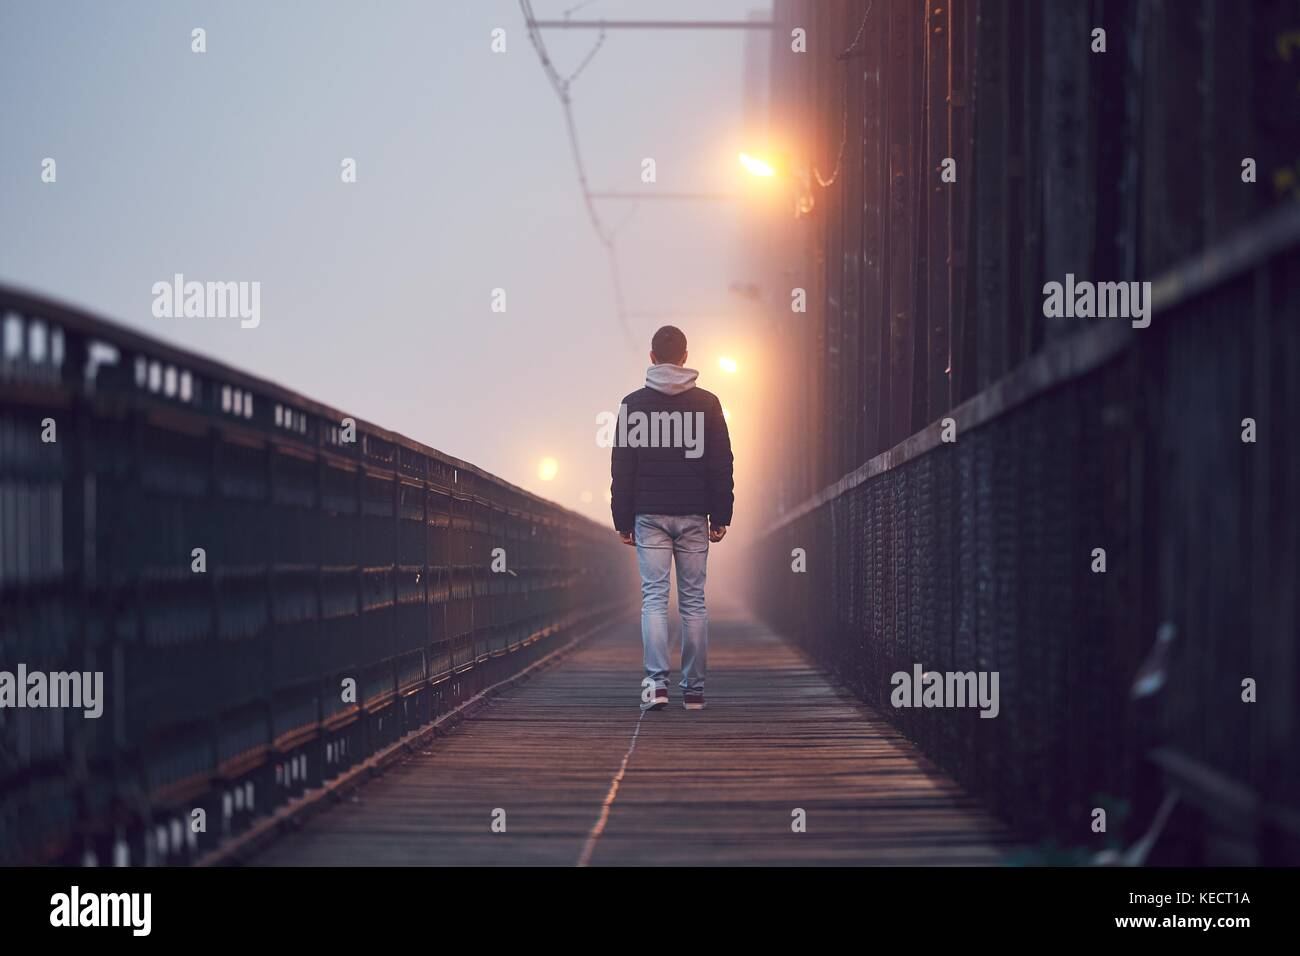 Gloomy weather. Lonely man is walking on the old bridge in mysterious fog. - Stock Image